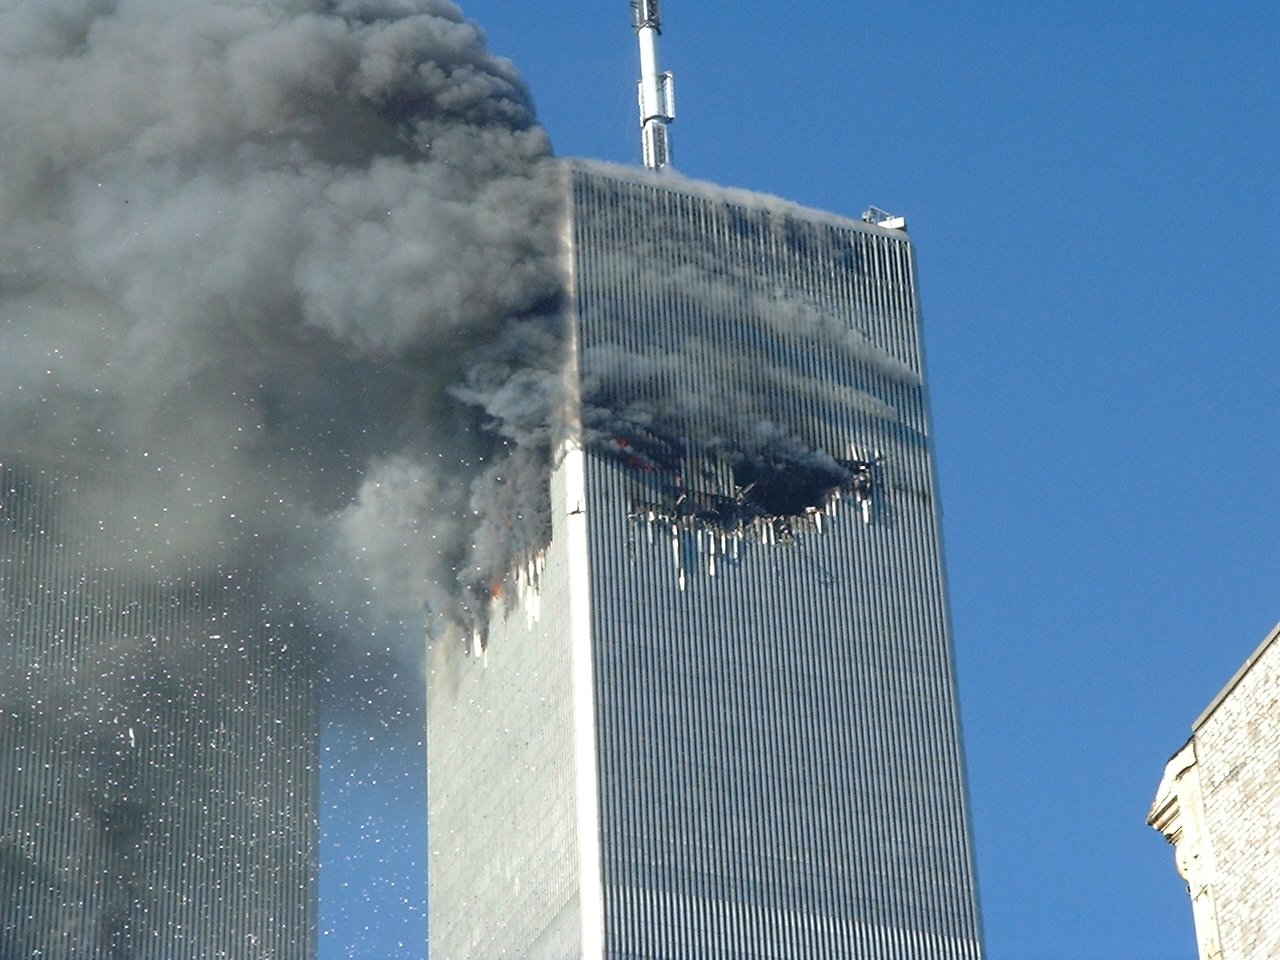 9 11 Research Fires In The Towers